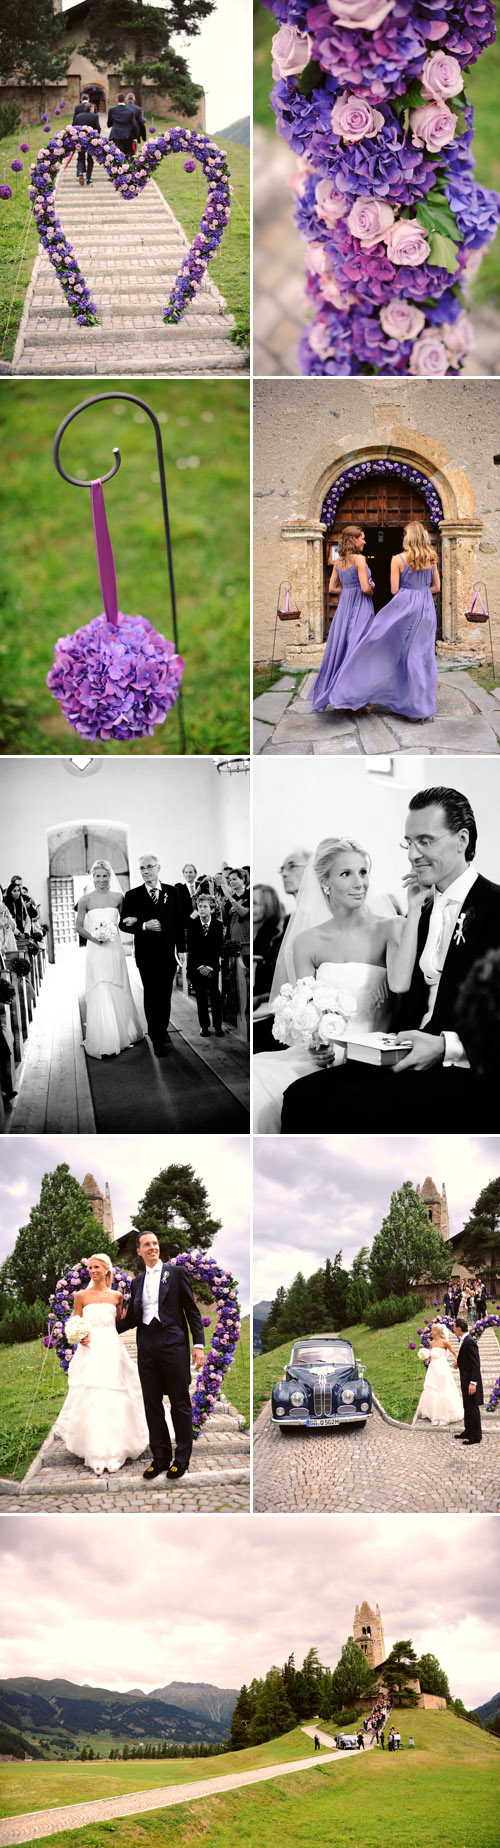 elegant and emotional purple and lavender wedding ceremony in St. Moritz, Switzerland, photos by Andrea & Marcus Photography